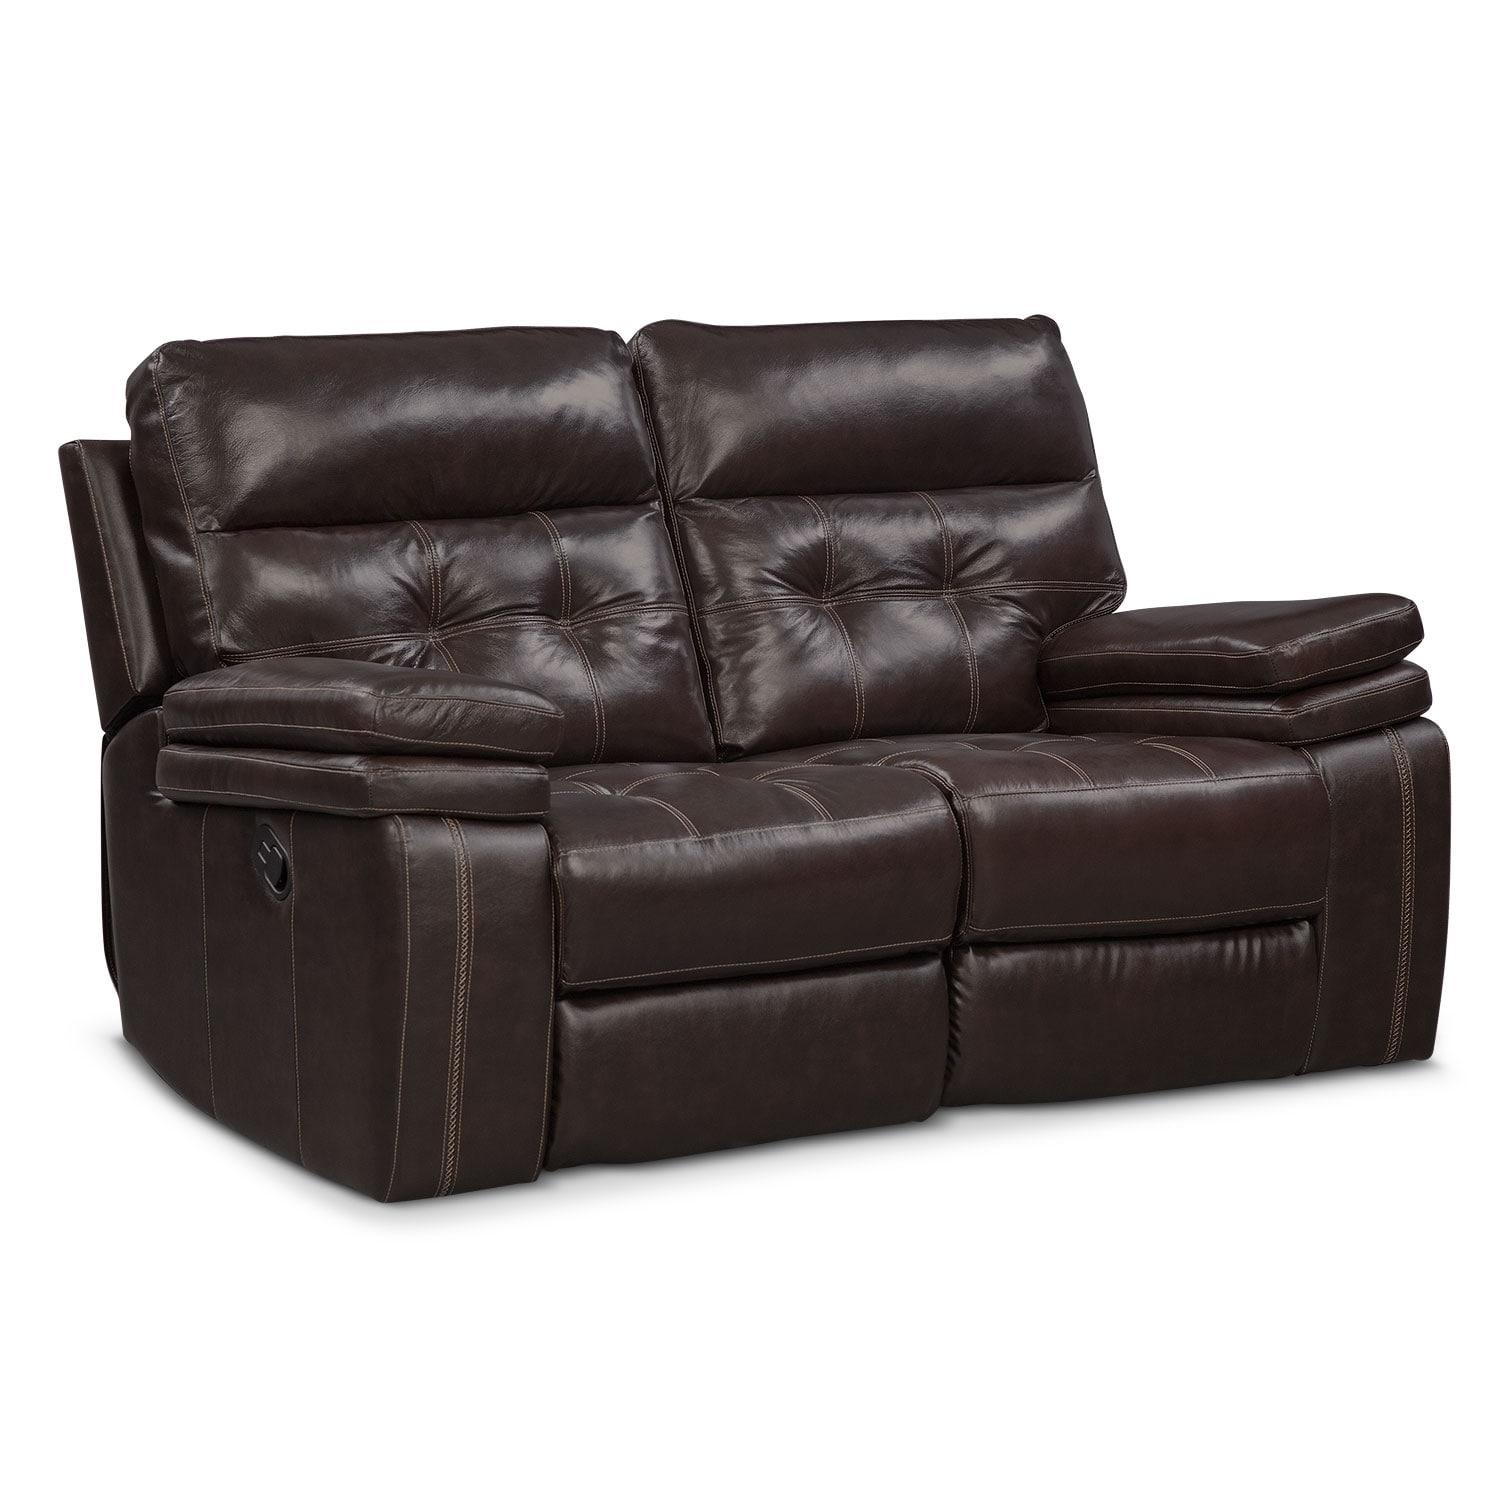 Brisco Manual Reclining Sofa And Reclining Loveseat Set Brown American Signature Furniture